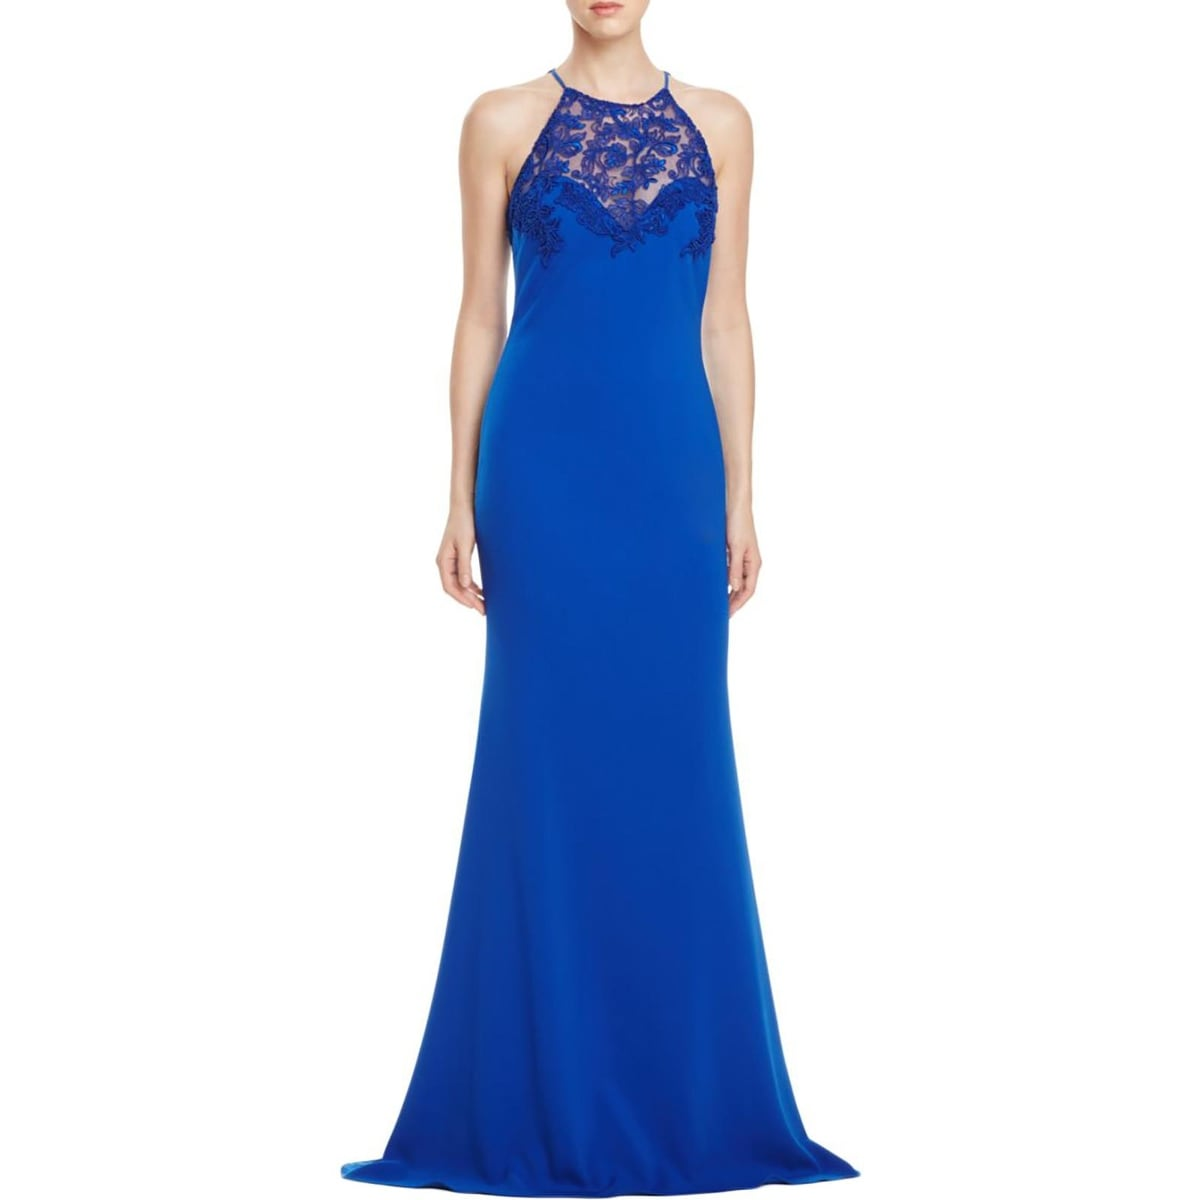 6dadc1d10374 Badgley Mischka Dresses   Find Great Women's Clothing Deals Shopping at  Overstock